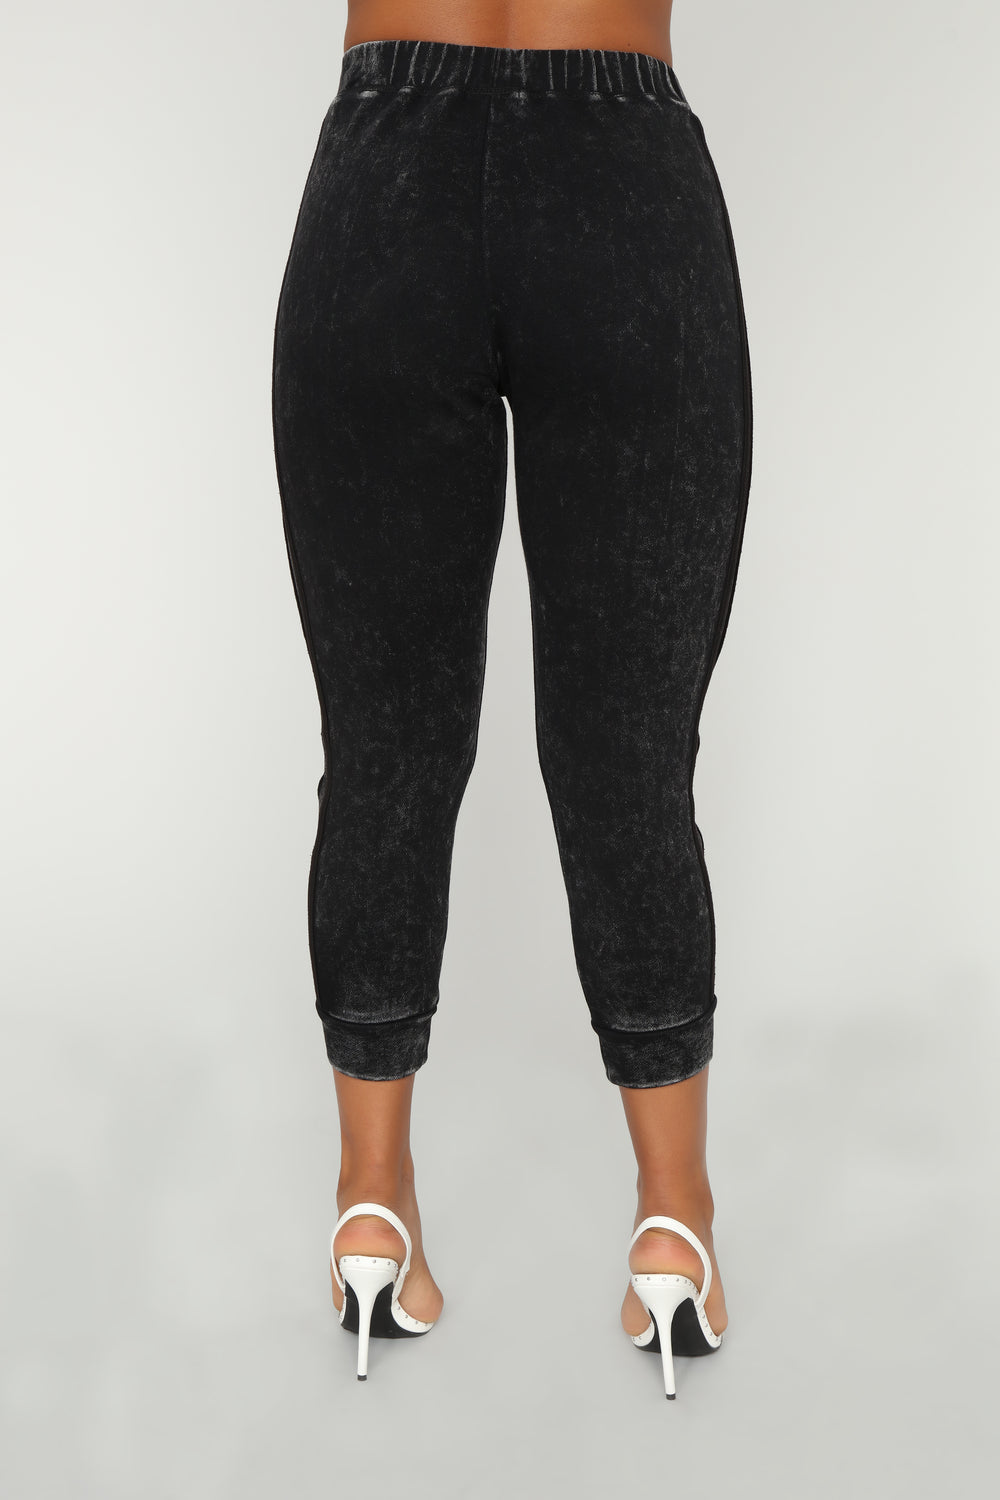 Around Town Joggers - Black